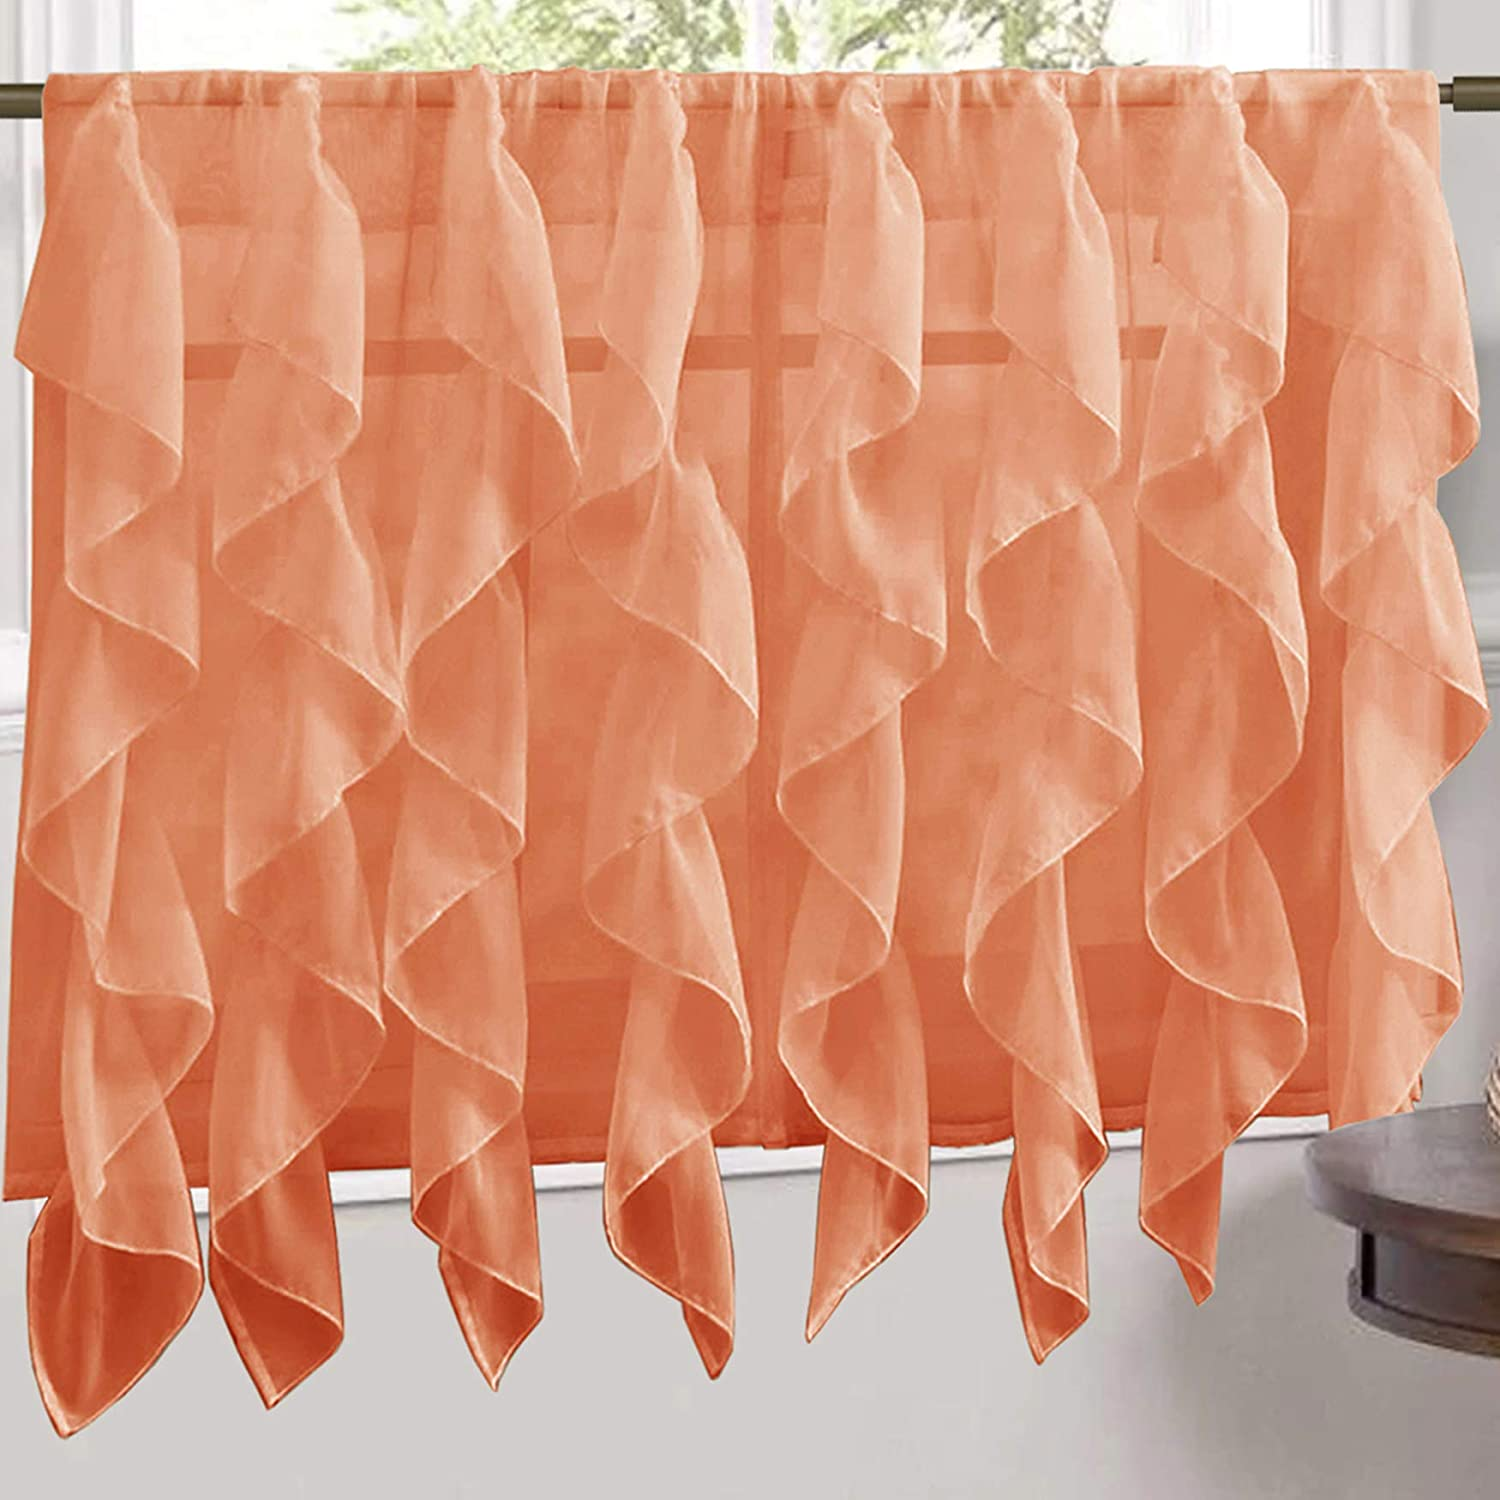 """Sweet Home Collection Veritcal Kitchen Curtain Sheer Cascading Ruffle Waterfall Window Treatment - Choice of Valance, 24"""" or 36"""" Teir, and Kit Tier Pair Only, Spice"""